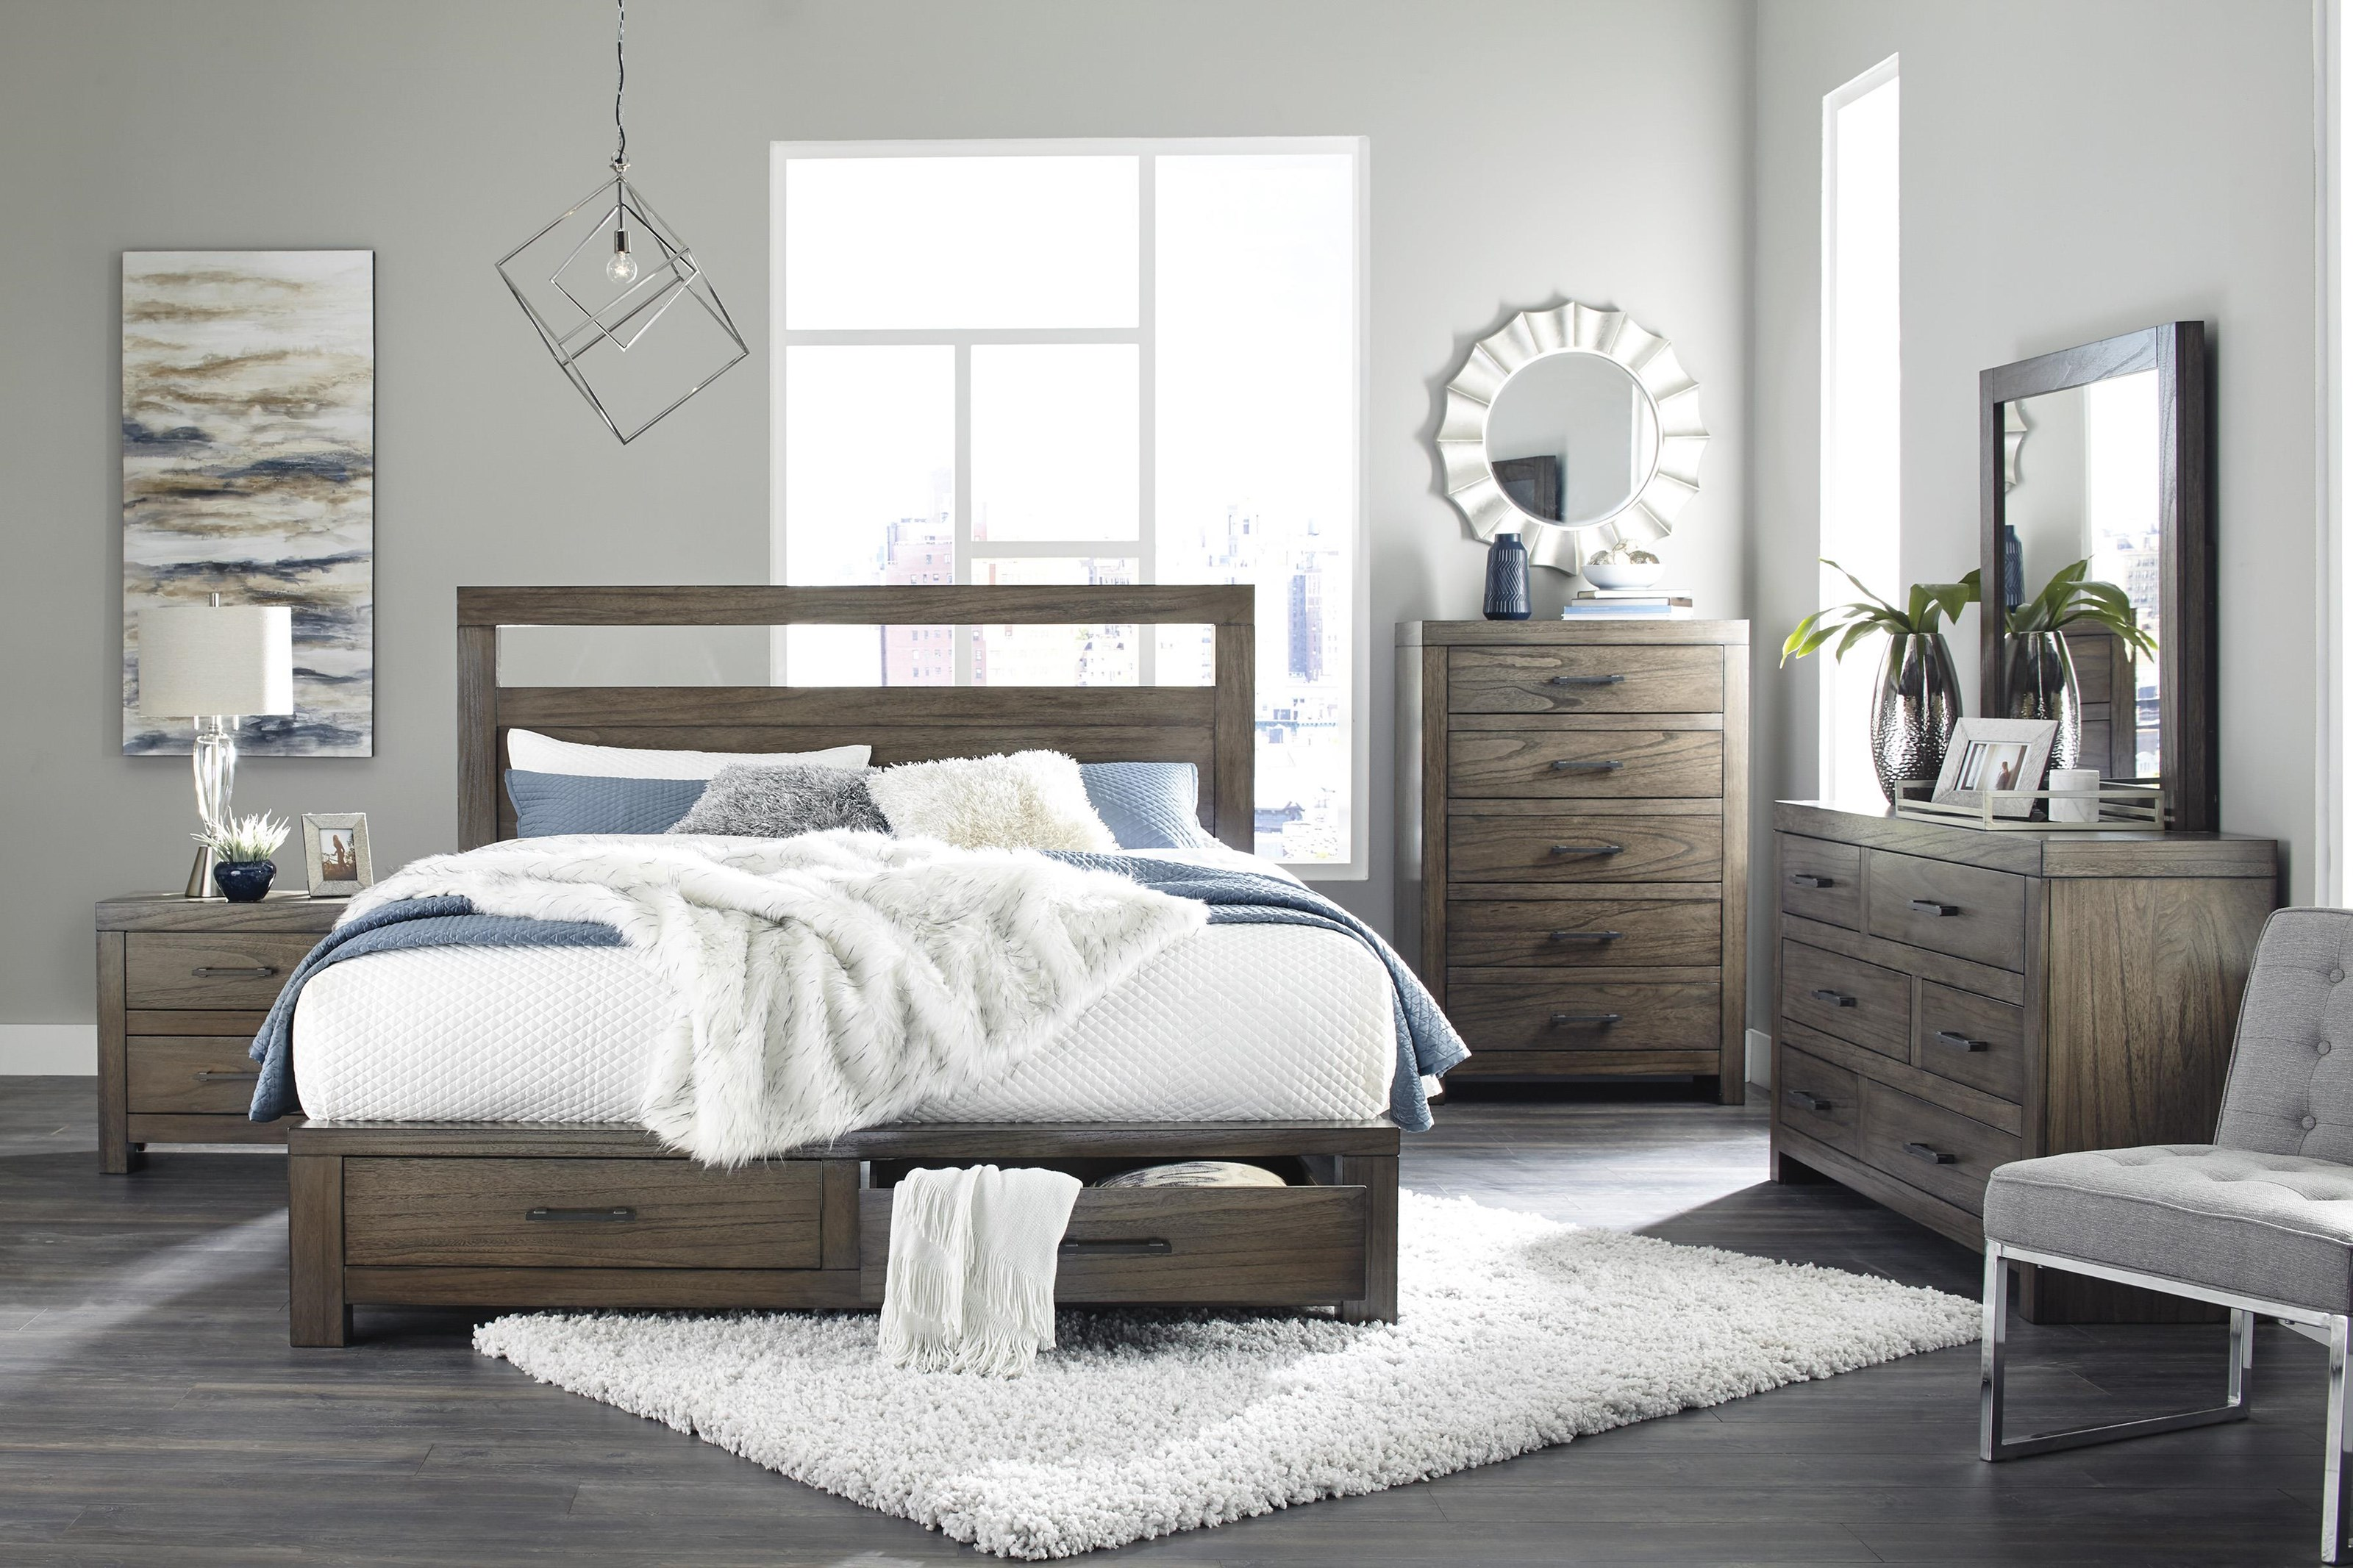 Picture of: Ashley Furniture Deylin B537 57 54s 31 36 92 Queen Platform Bed With Storage Footboard Dresser Mirror And Nightstand Package Sam Levitz Furniture Bedroom Groups